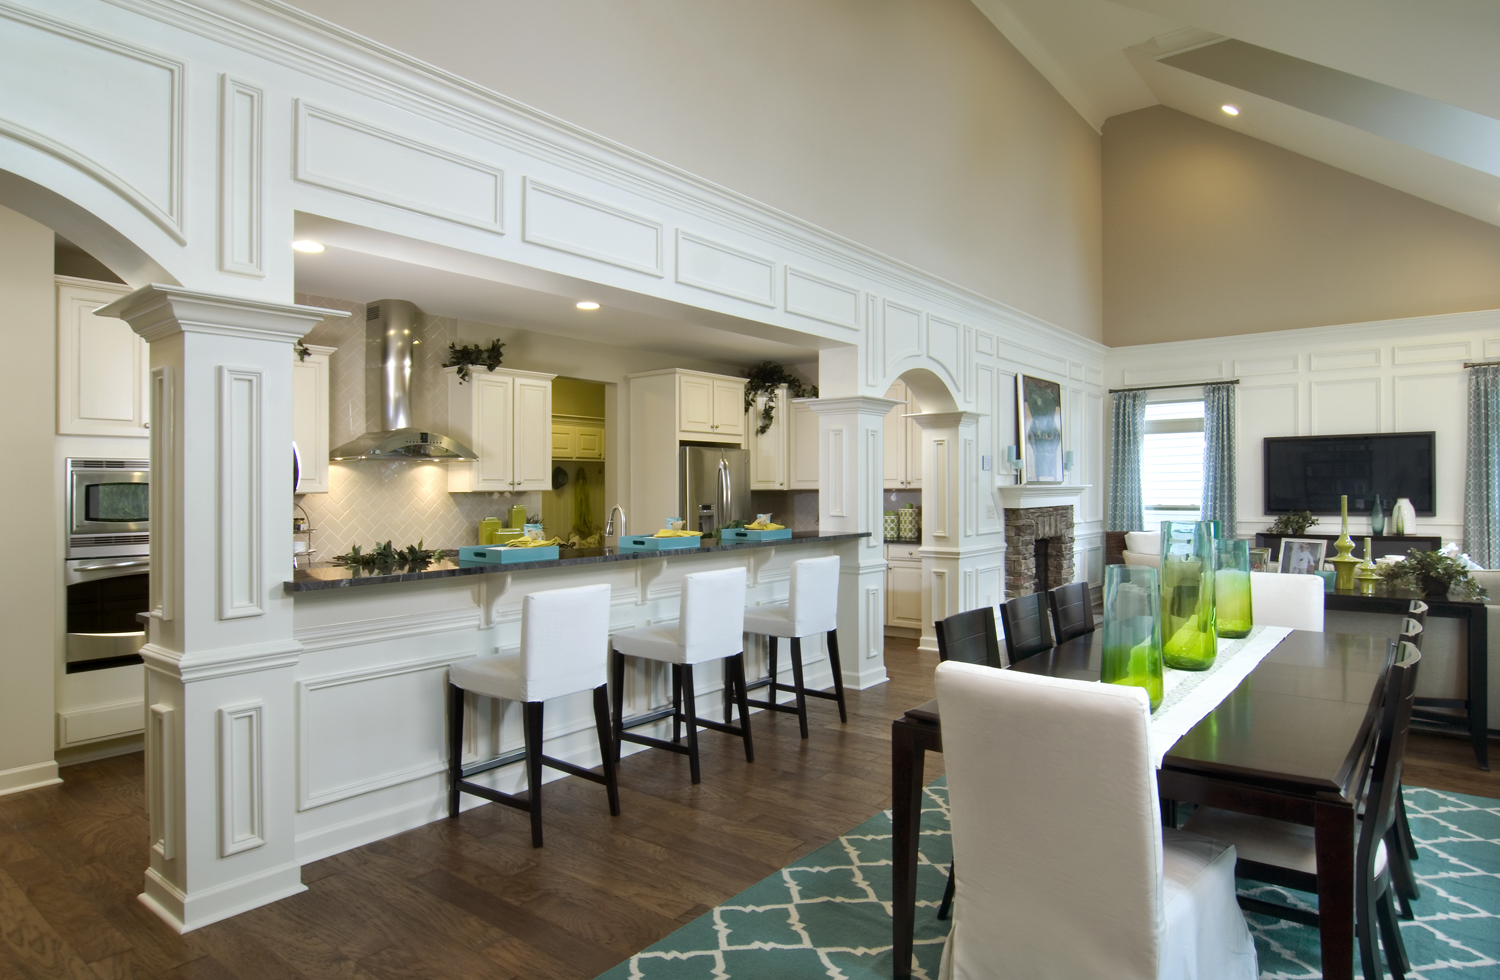 Shea homes opens new single family neighborhood in wesley for New model kitchen design